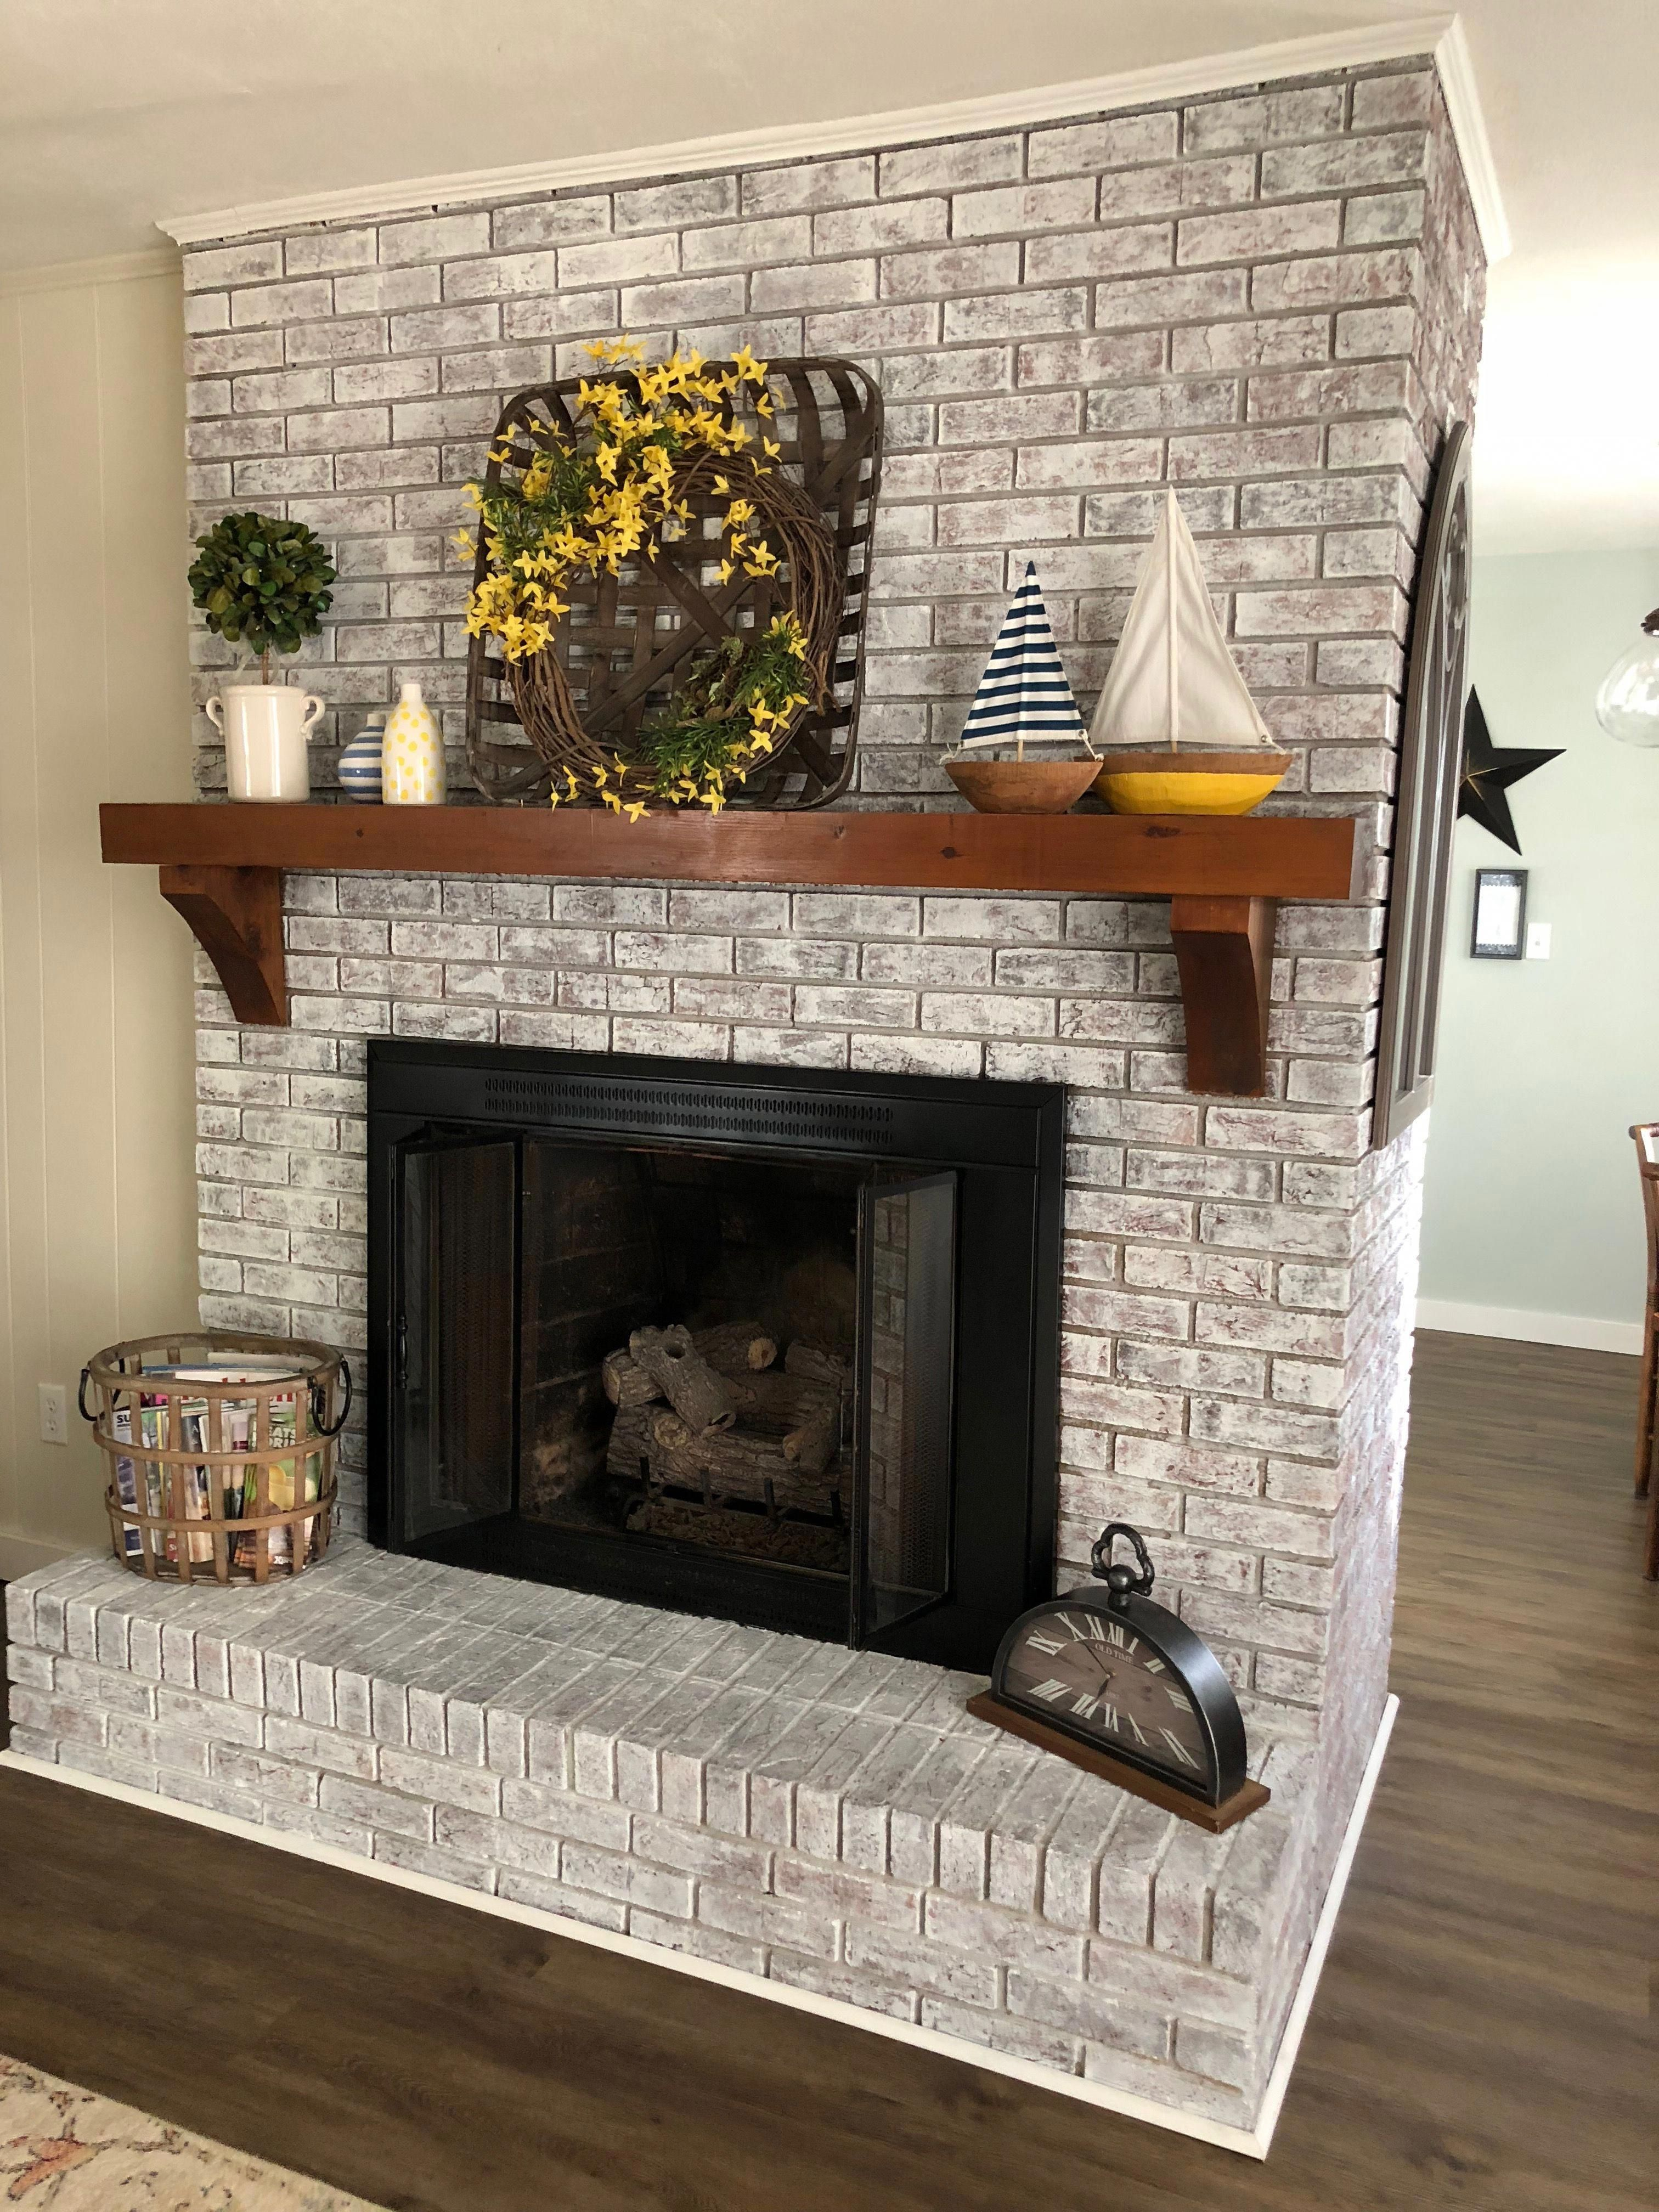 Off White Fireplace Beautiful Painted Brick Fireplace Sw Pure White Over Dark Red Brick